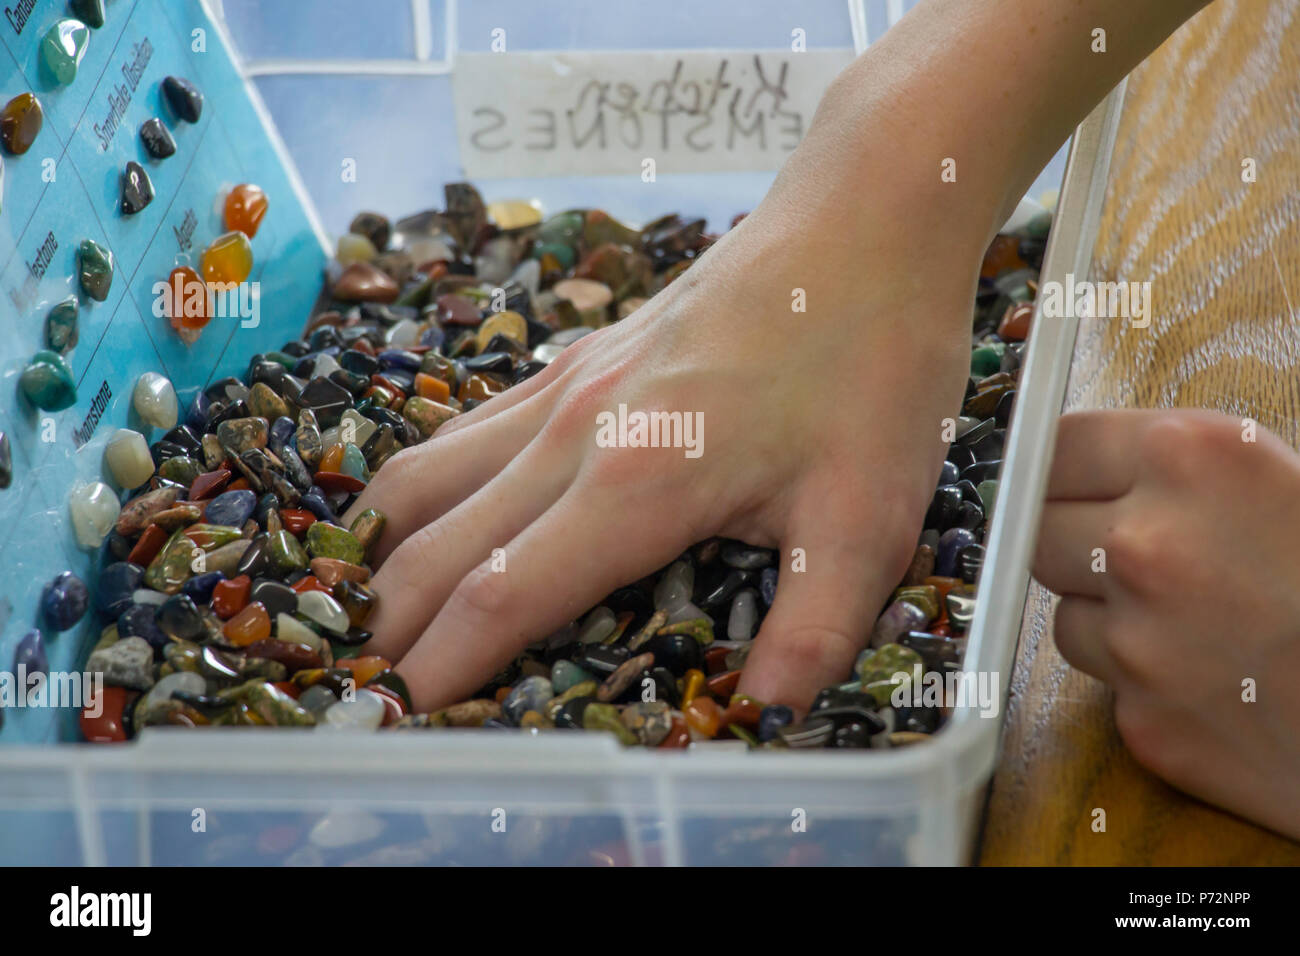 young boy's hand searching for a perfect stone in a box full of semi-precious gemstone Stock Photo